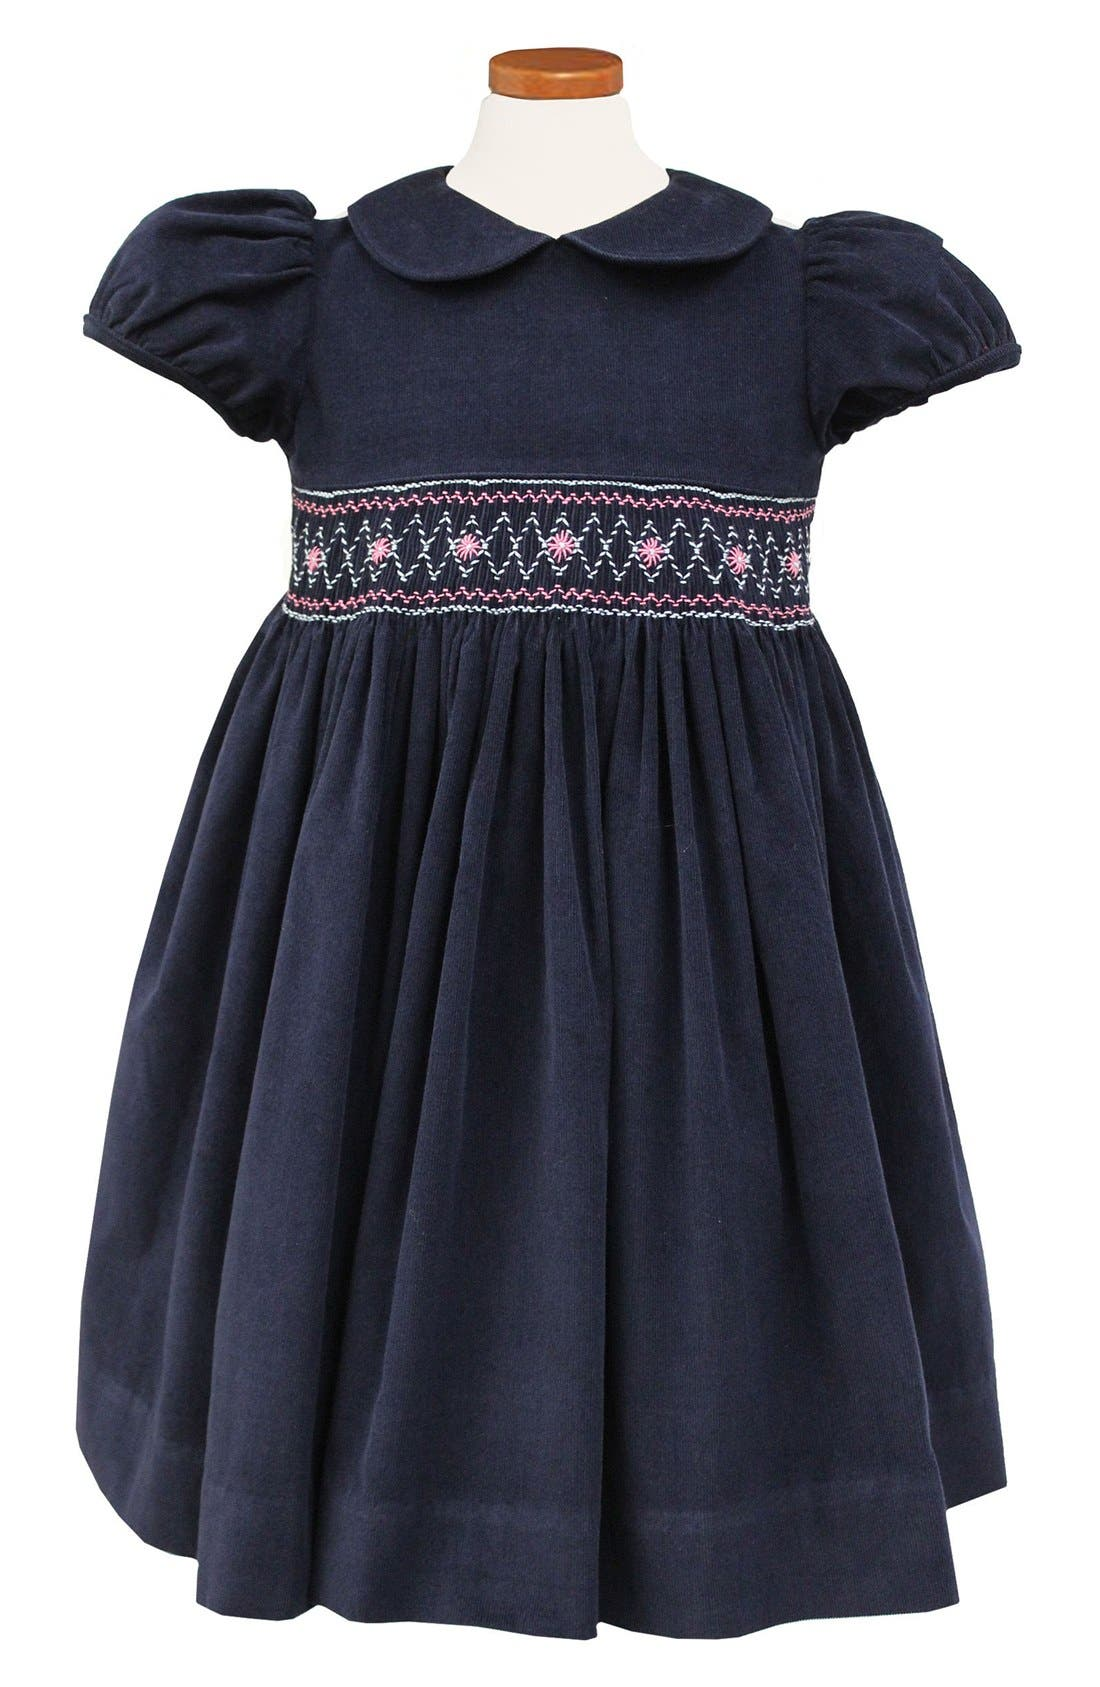 Embroidered Smocked Waist Dress,                         Main,                         color, 400